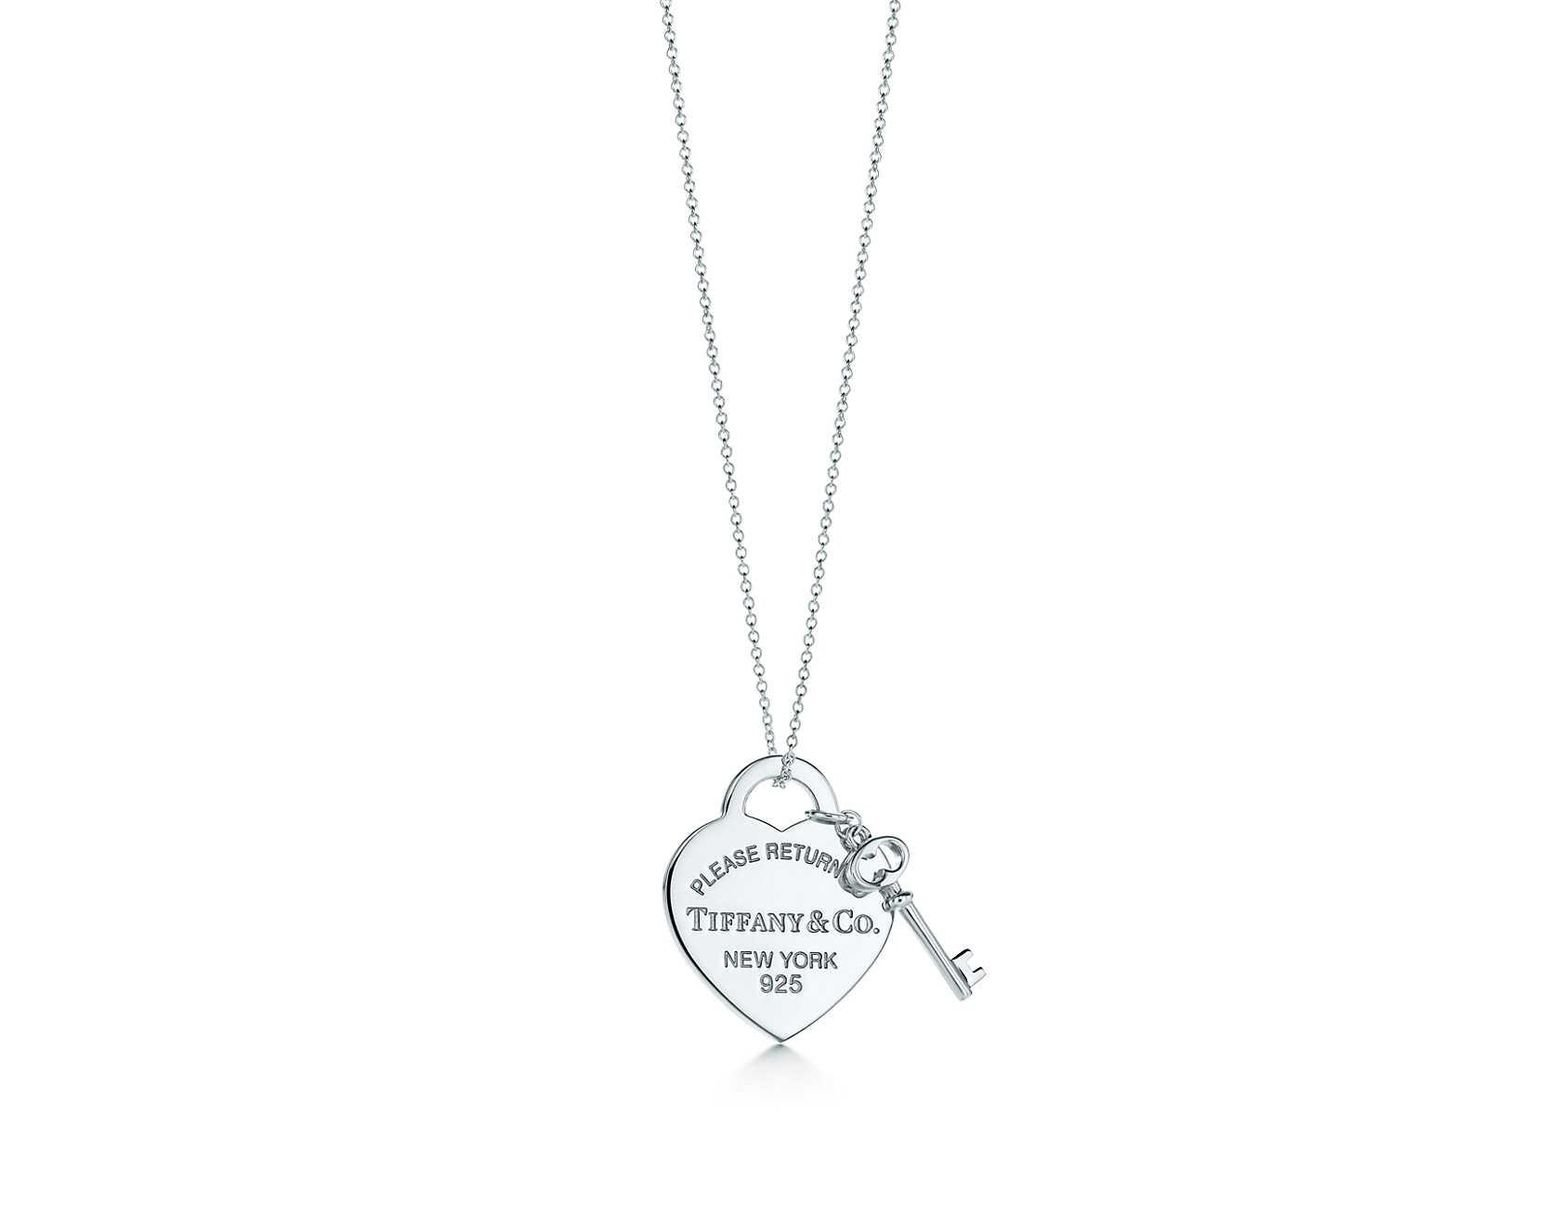 145e5d71e Tiffany & Co. Medium Heart Tag With Key Pendant In Sterling Silver - 16 In  in Metallic - Lyst